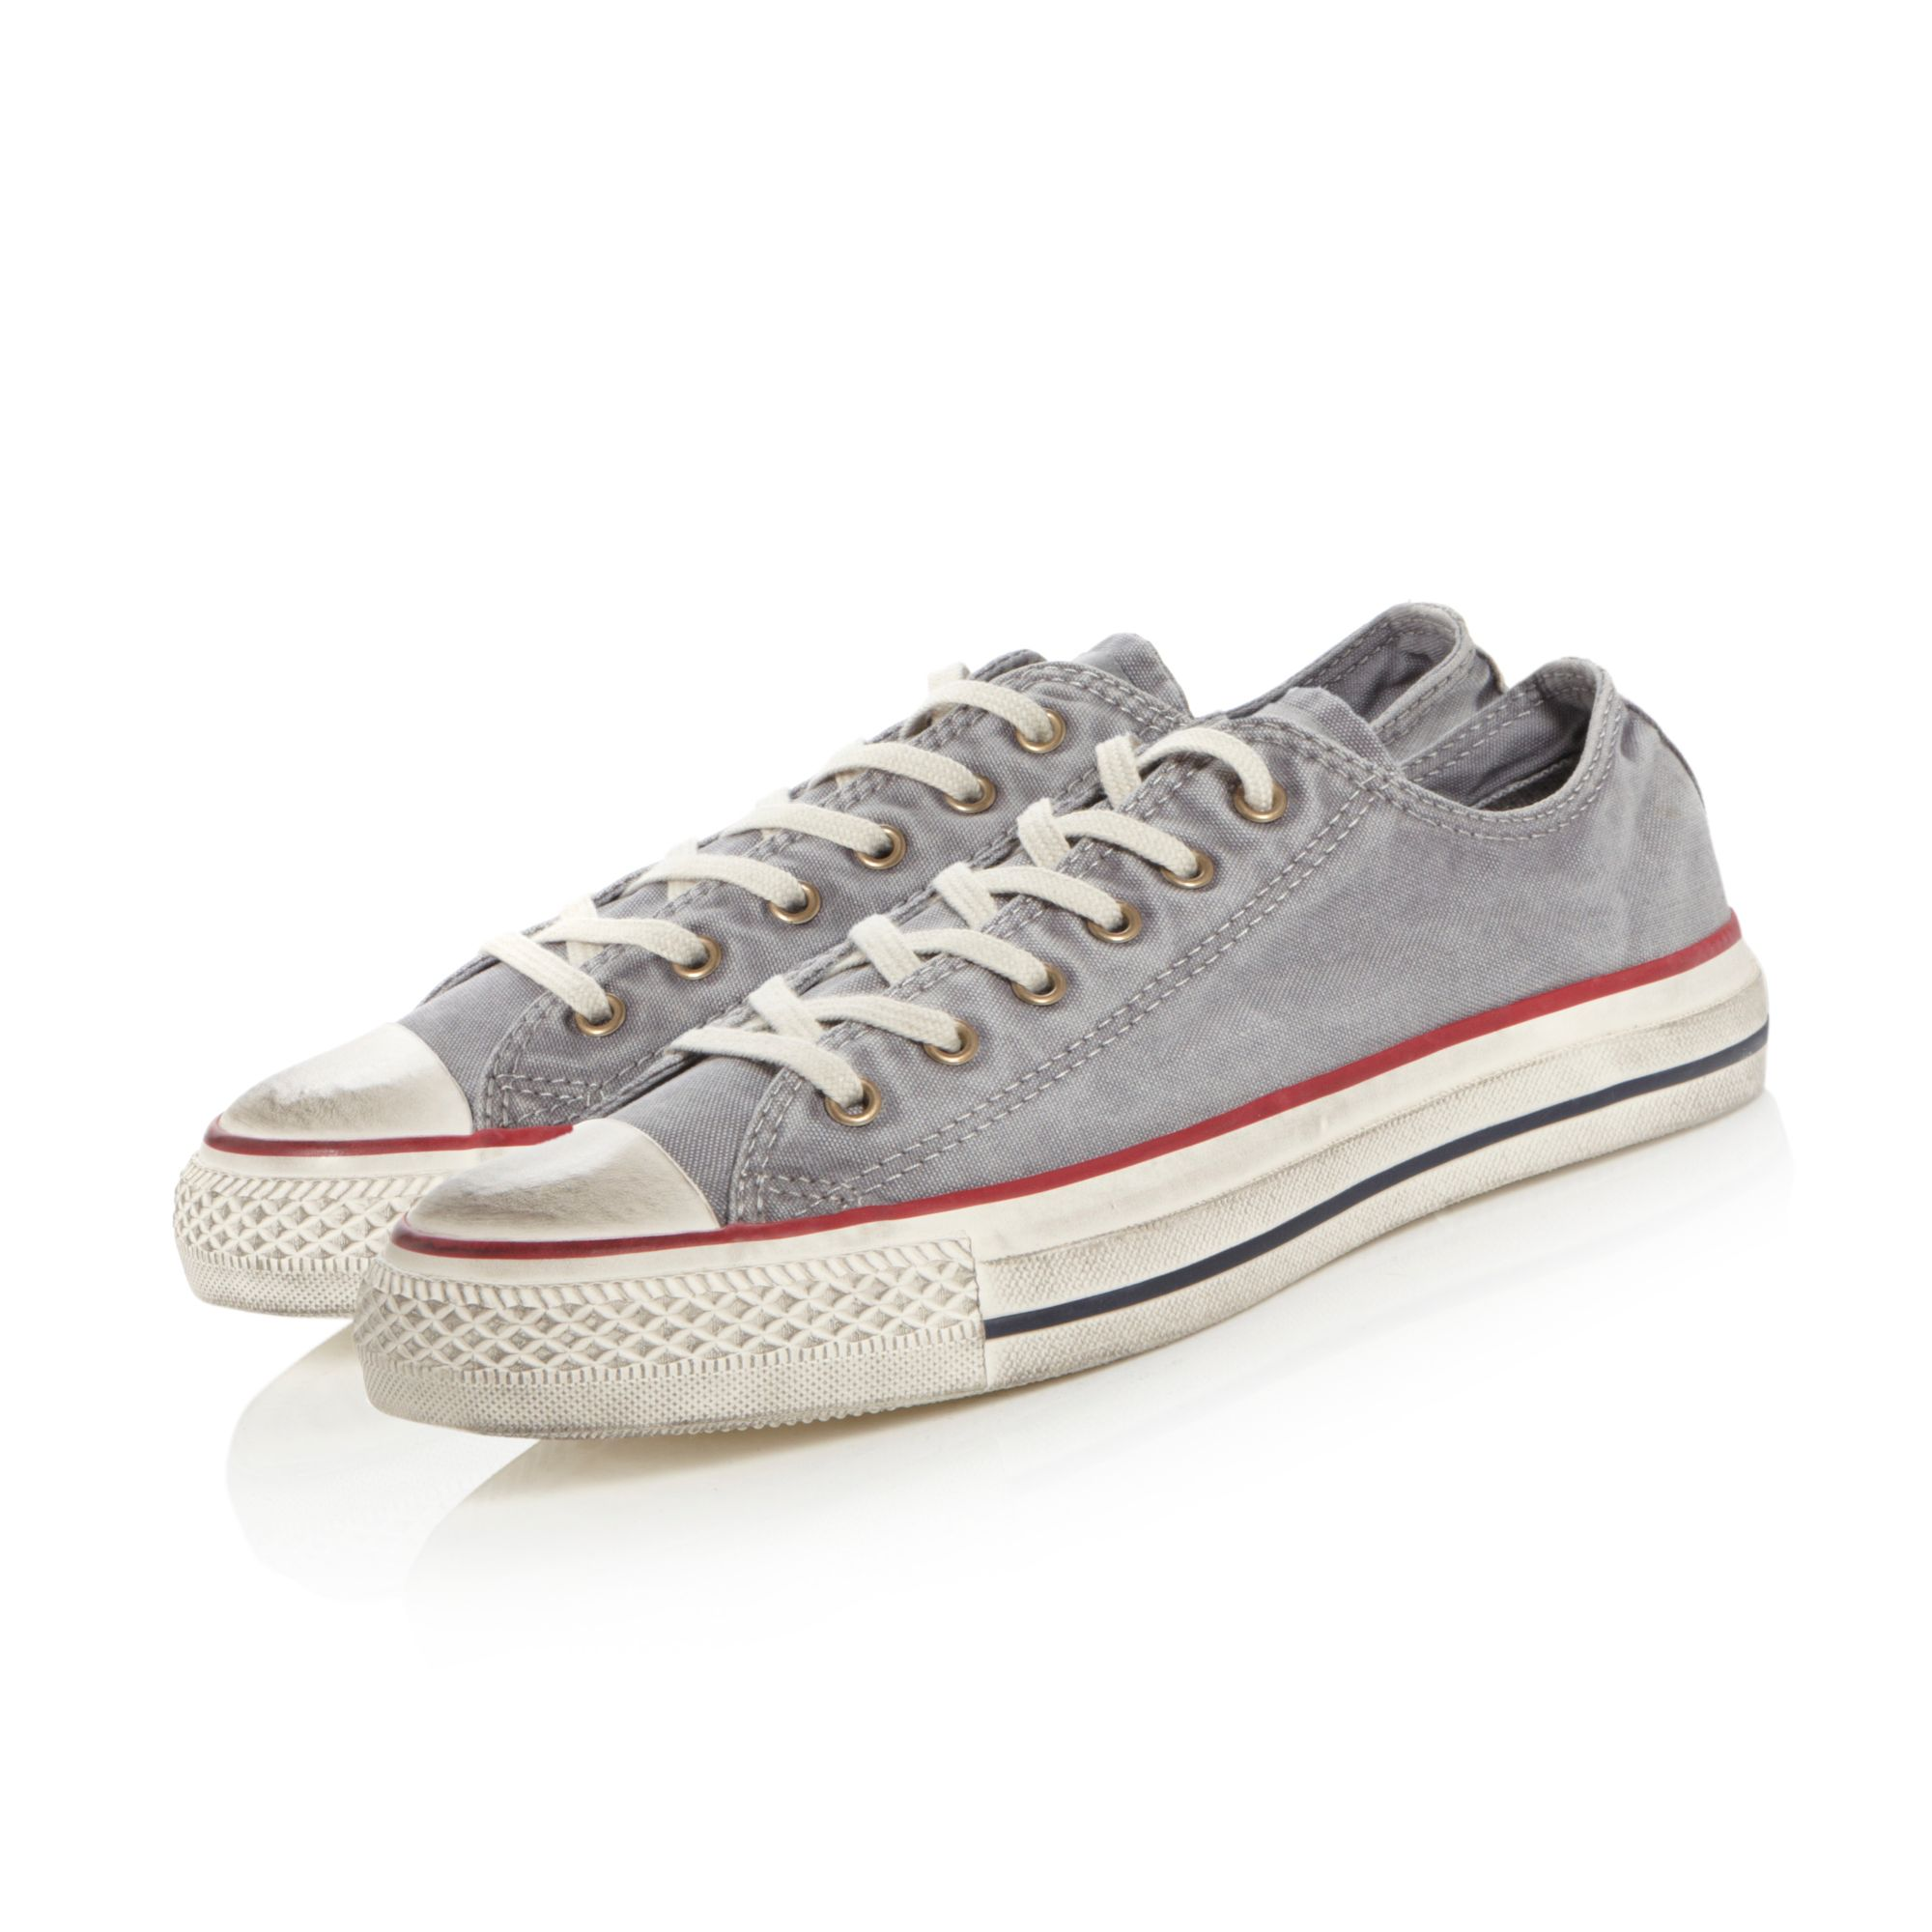 136713C washed low trainers